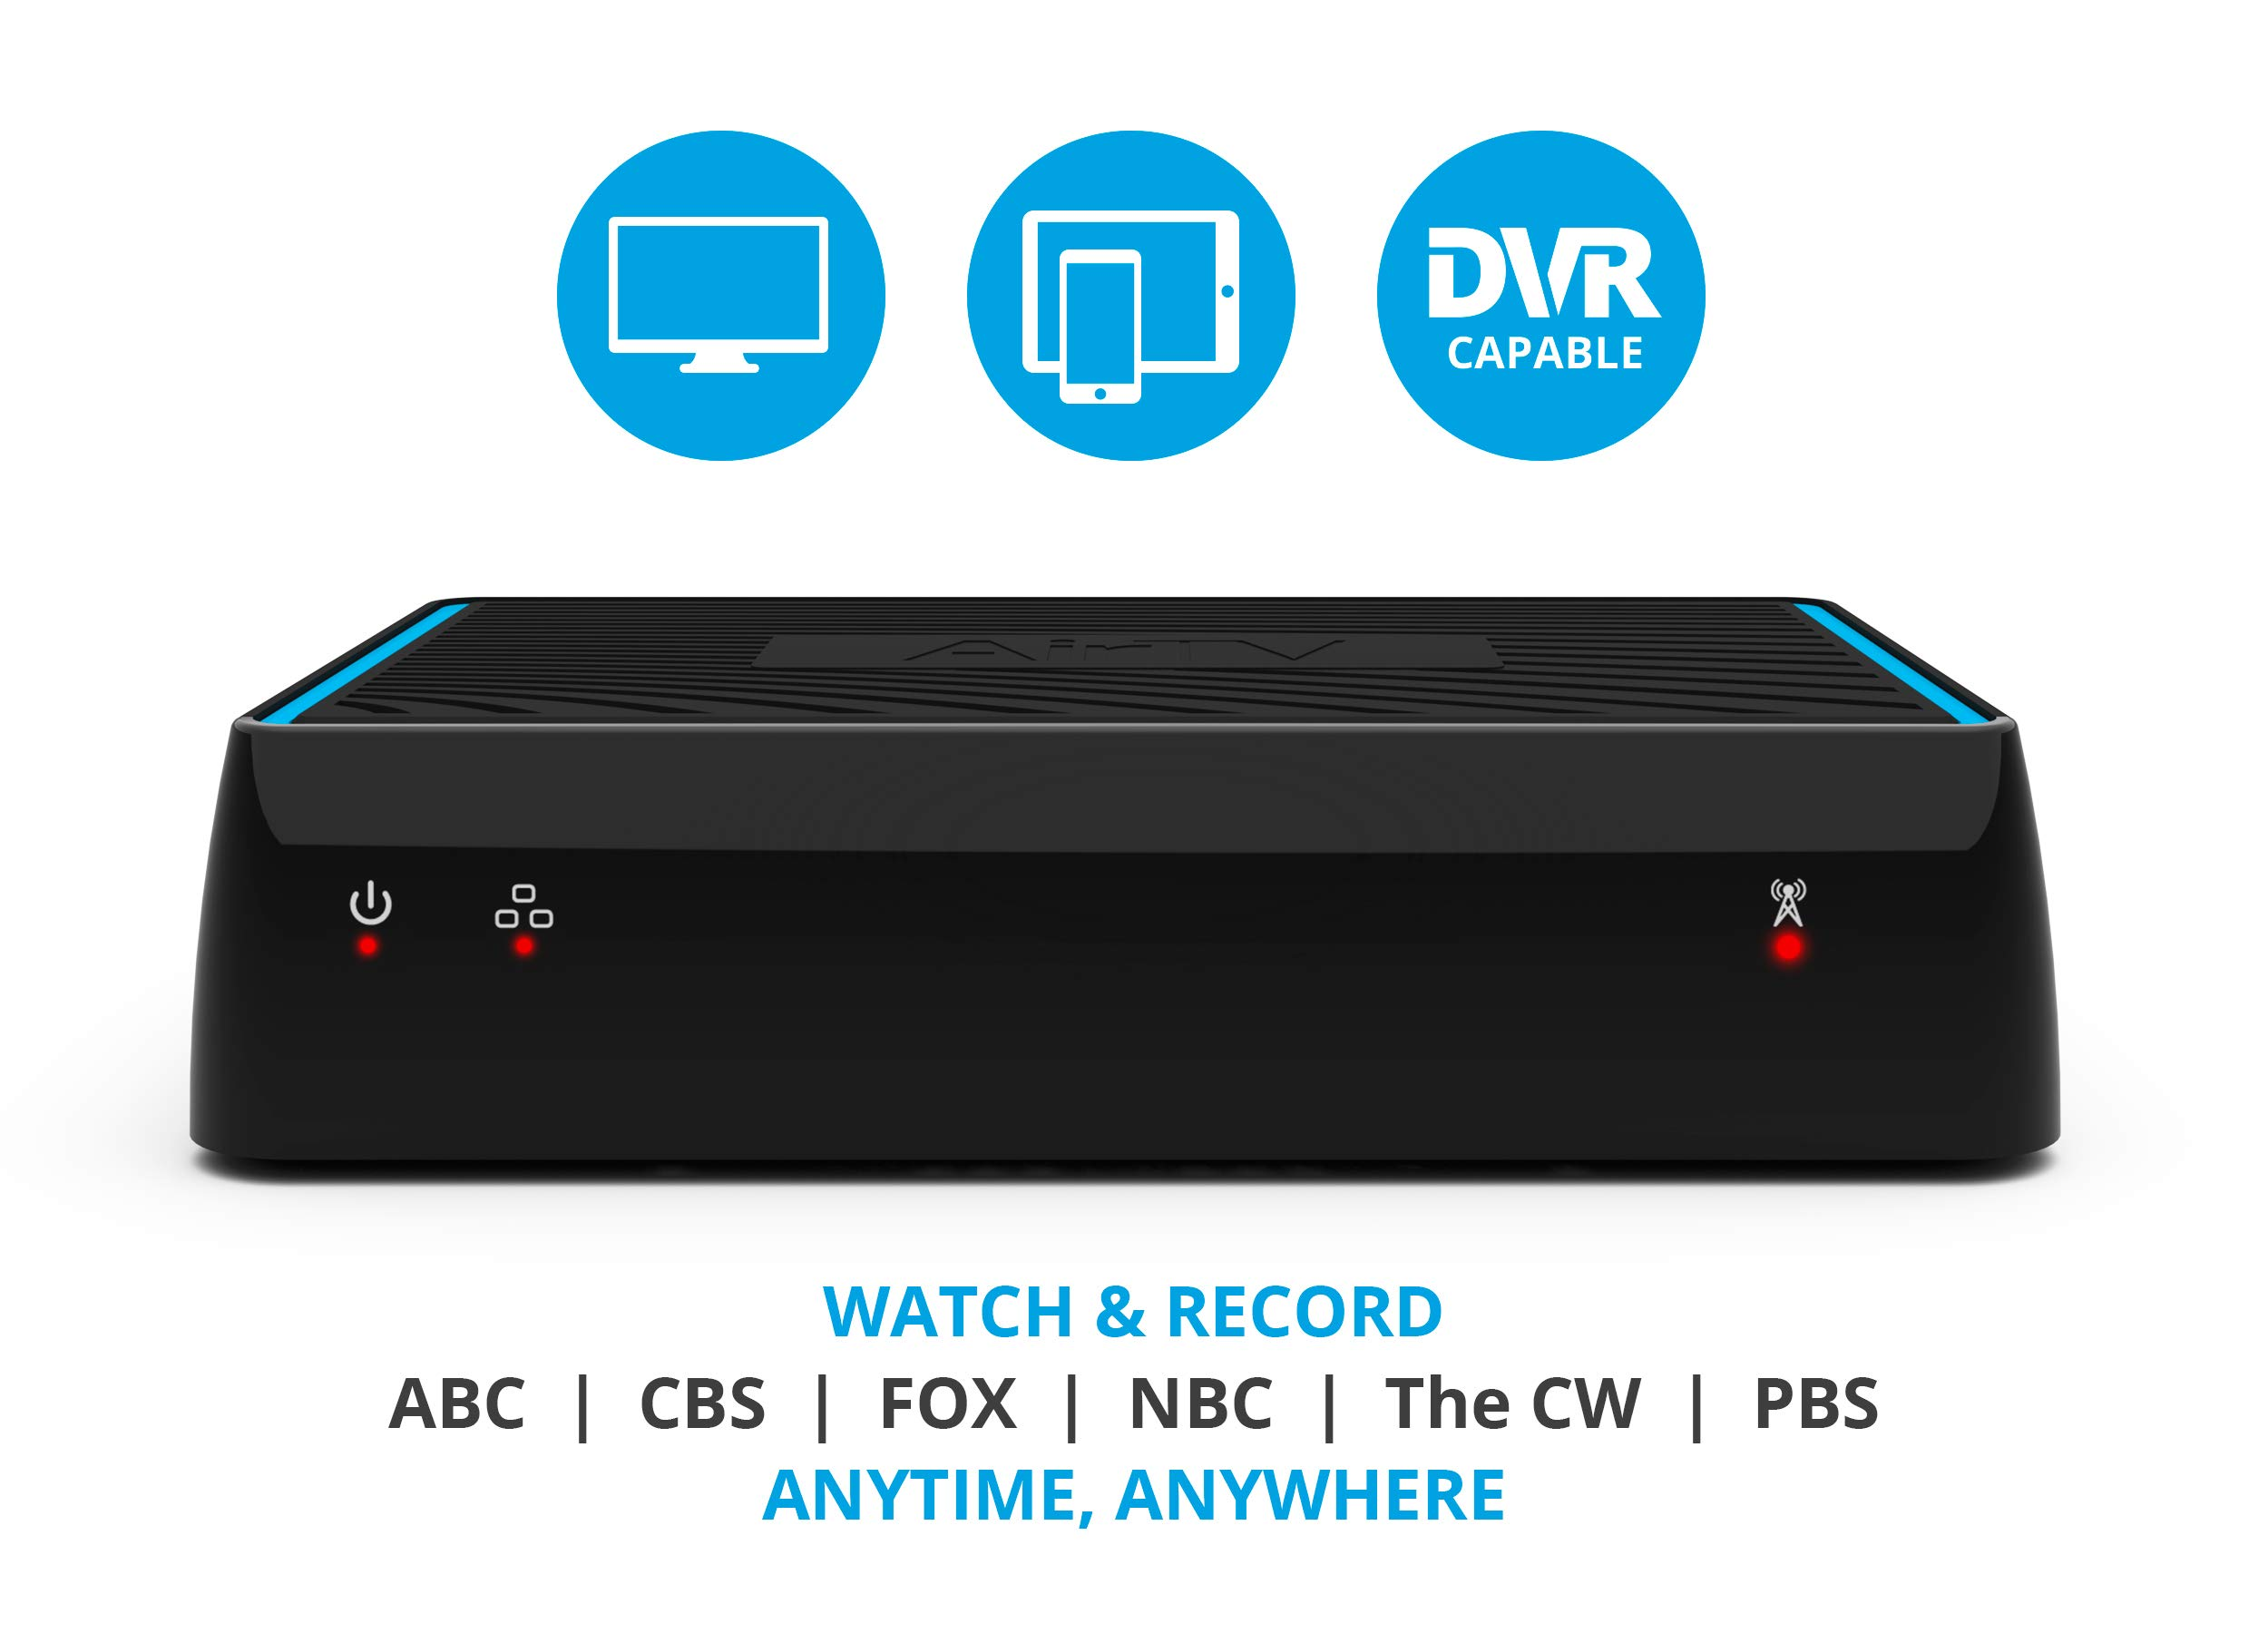 AirTV   Dual-tuner Local Channel Streamer for TVs and Mobile Devices   DVR Capable   Built for Sling TV